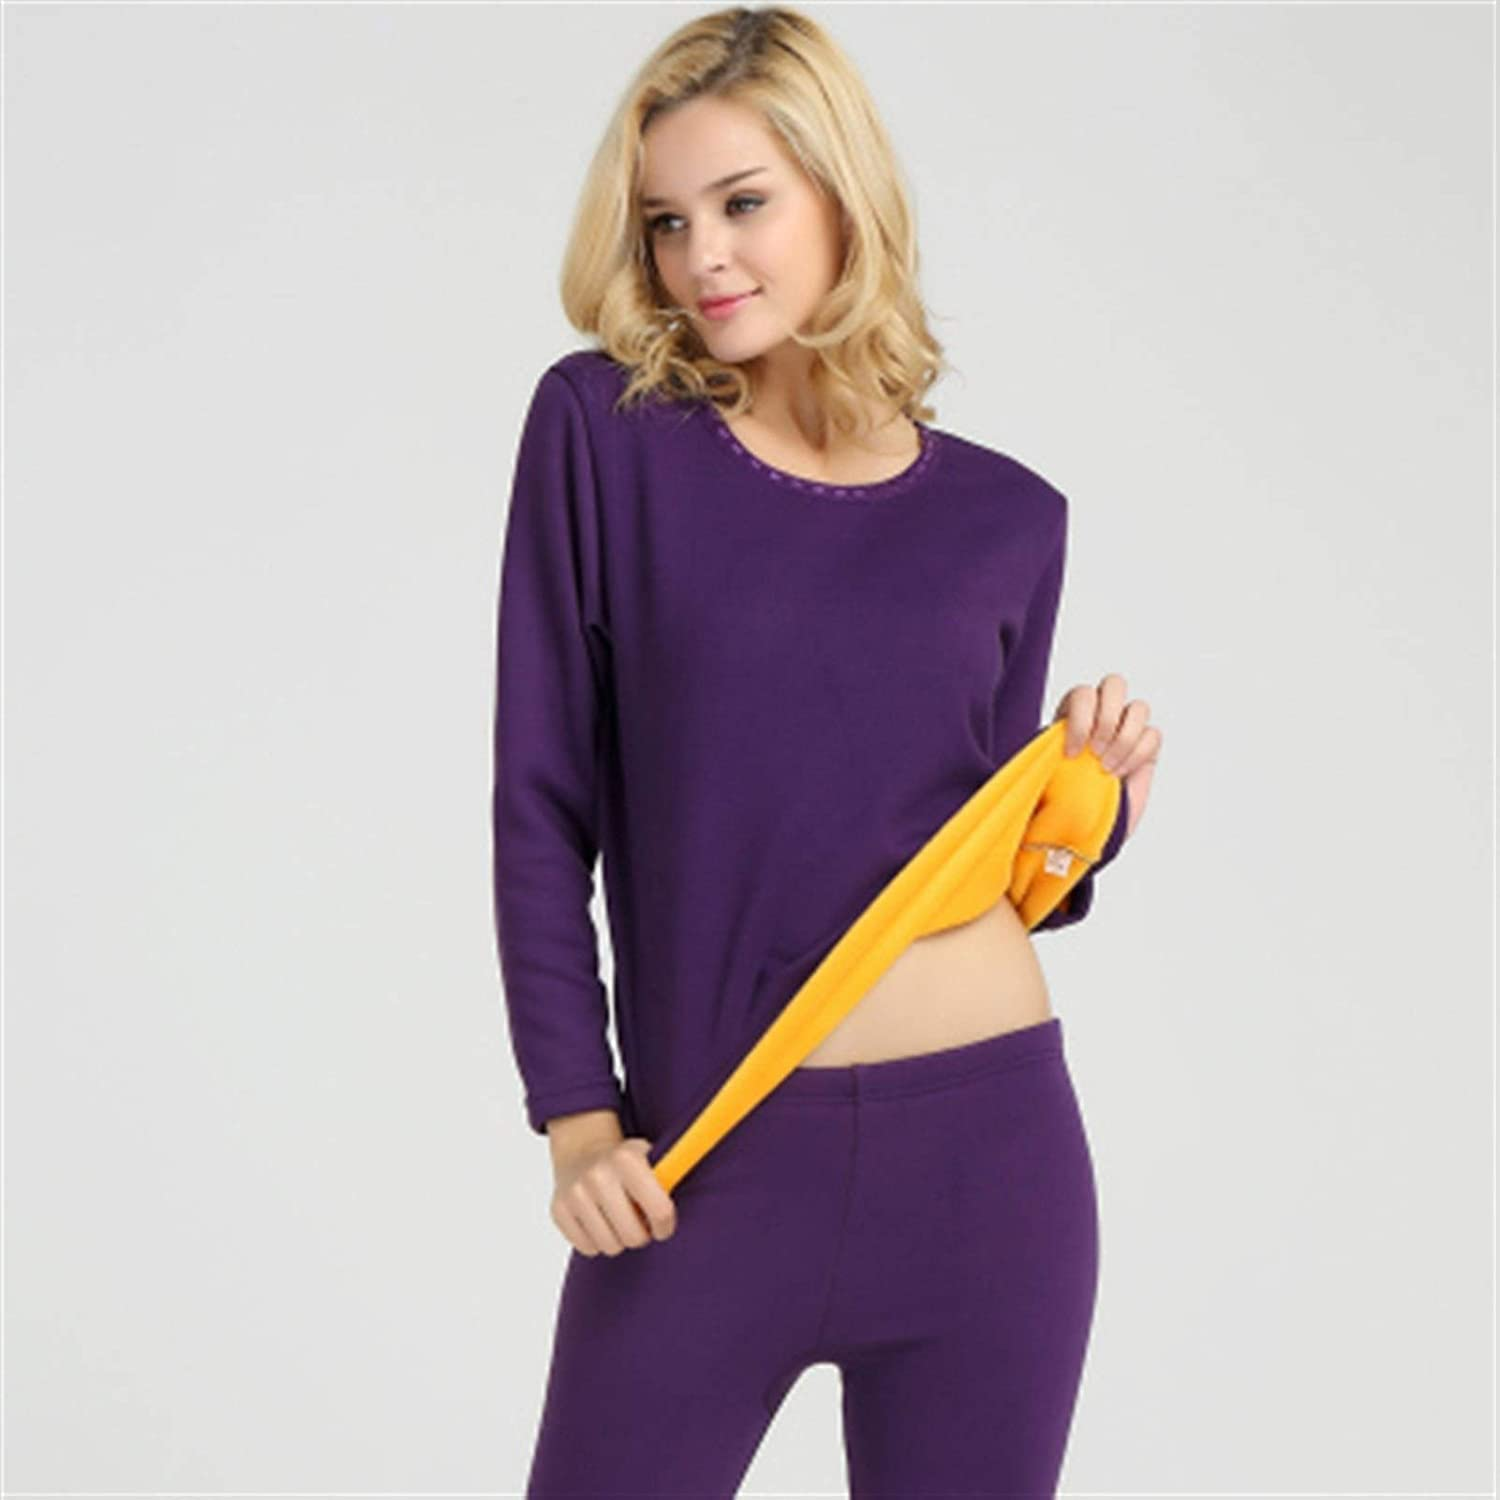 ZHANGZEHONG Thermal Underwear Men Winter Women Long Johns Sets Fleece Keep Warm in Cold Weather Size L to 6XL (Color : Purple, Size : XXX-Large)